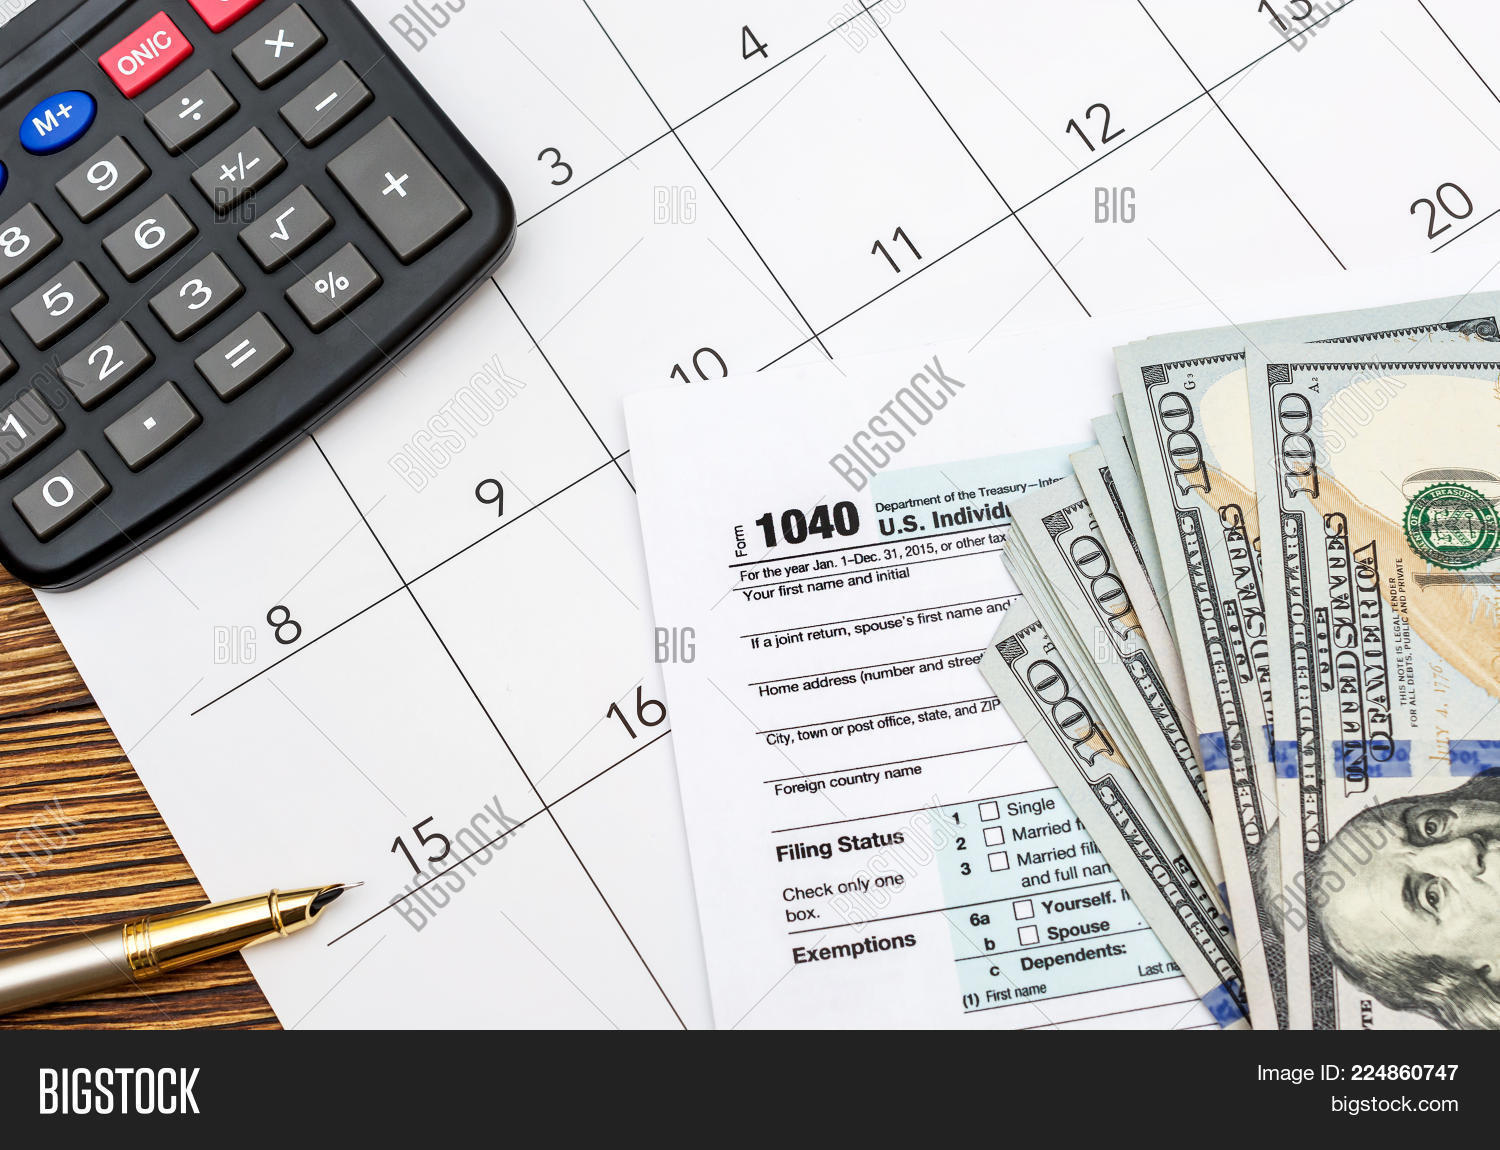 government tax forms with money powerpoint template government tax